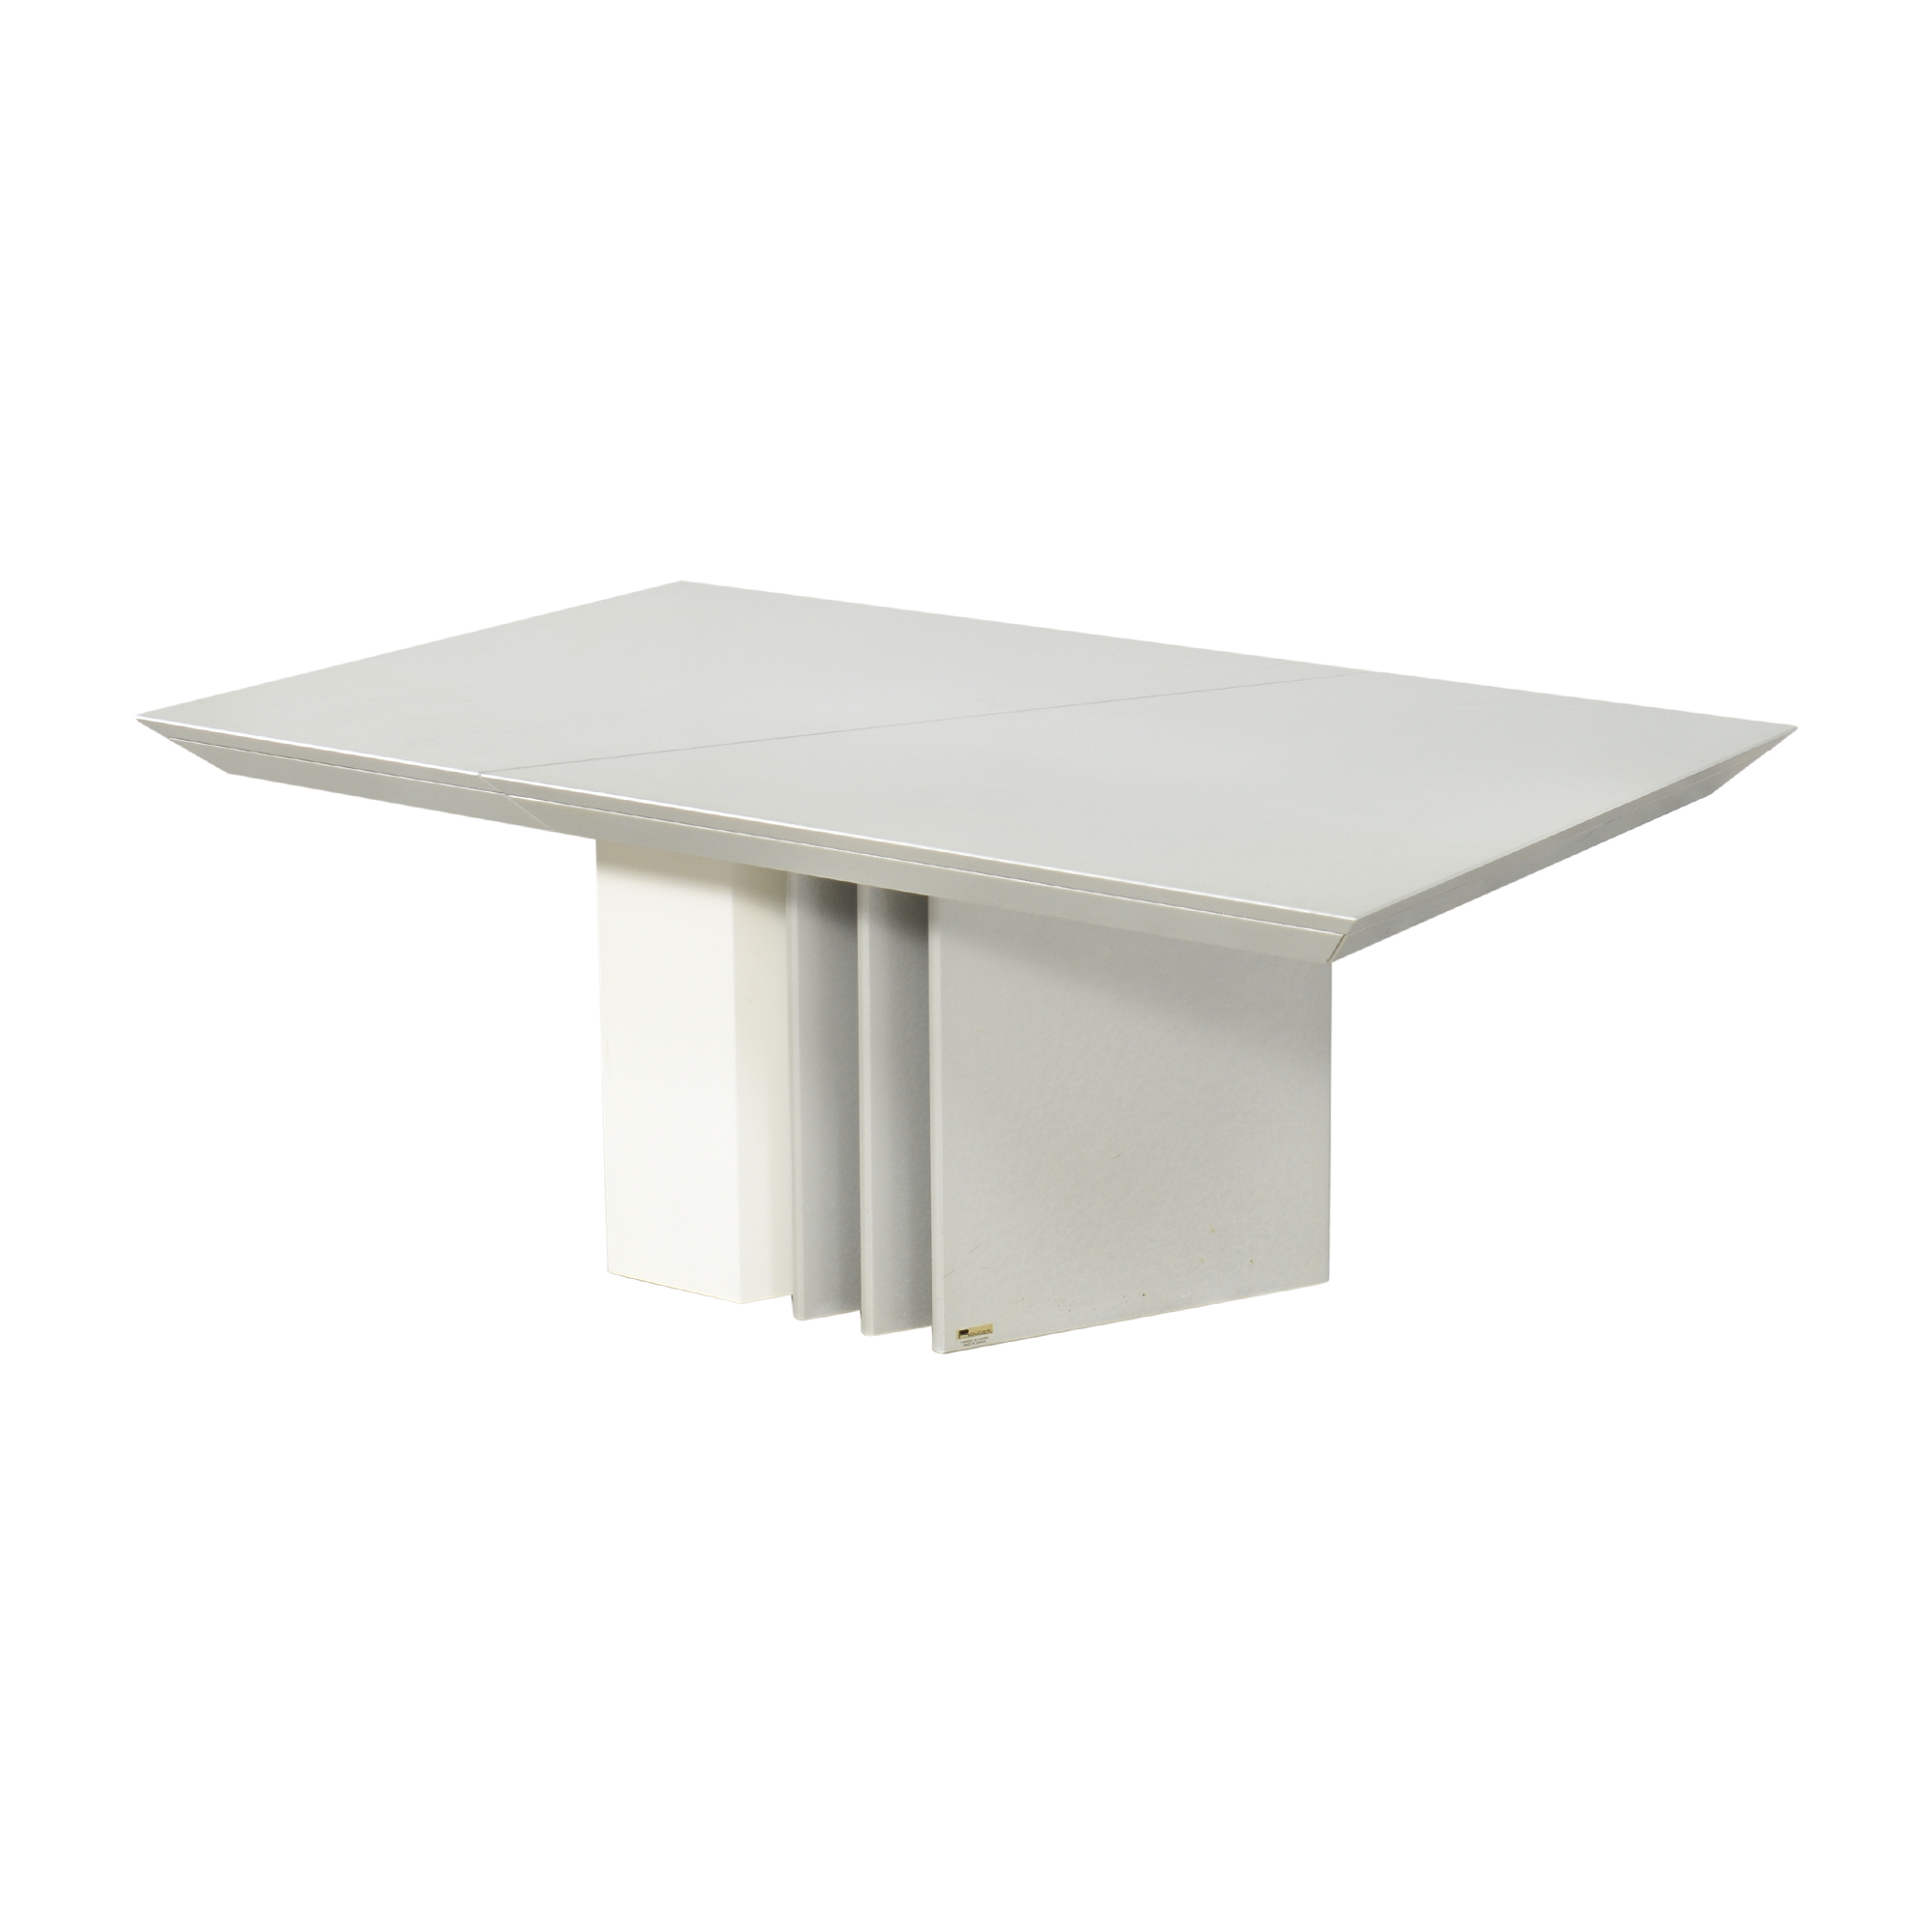 Rougier Rougier Modern Extendable Dining Table ma